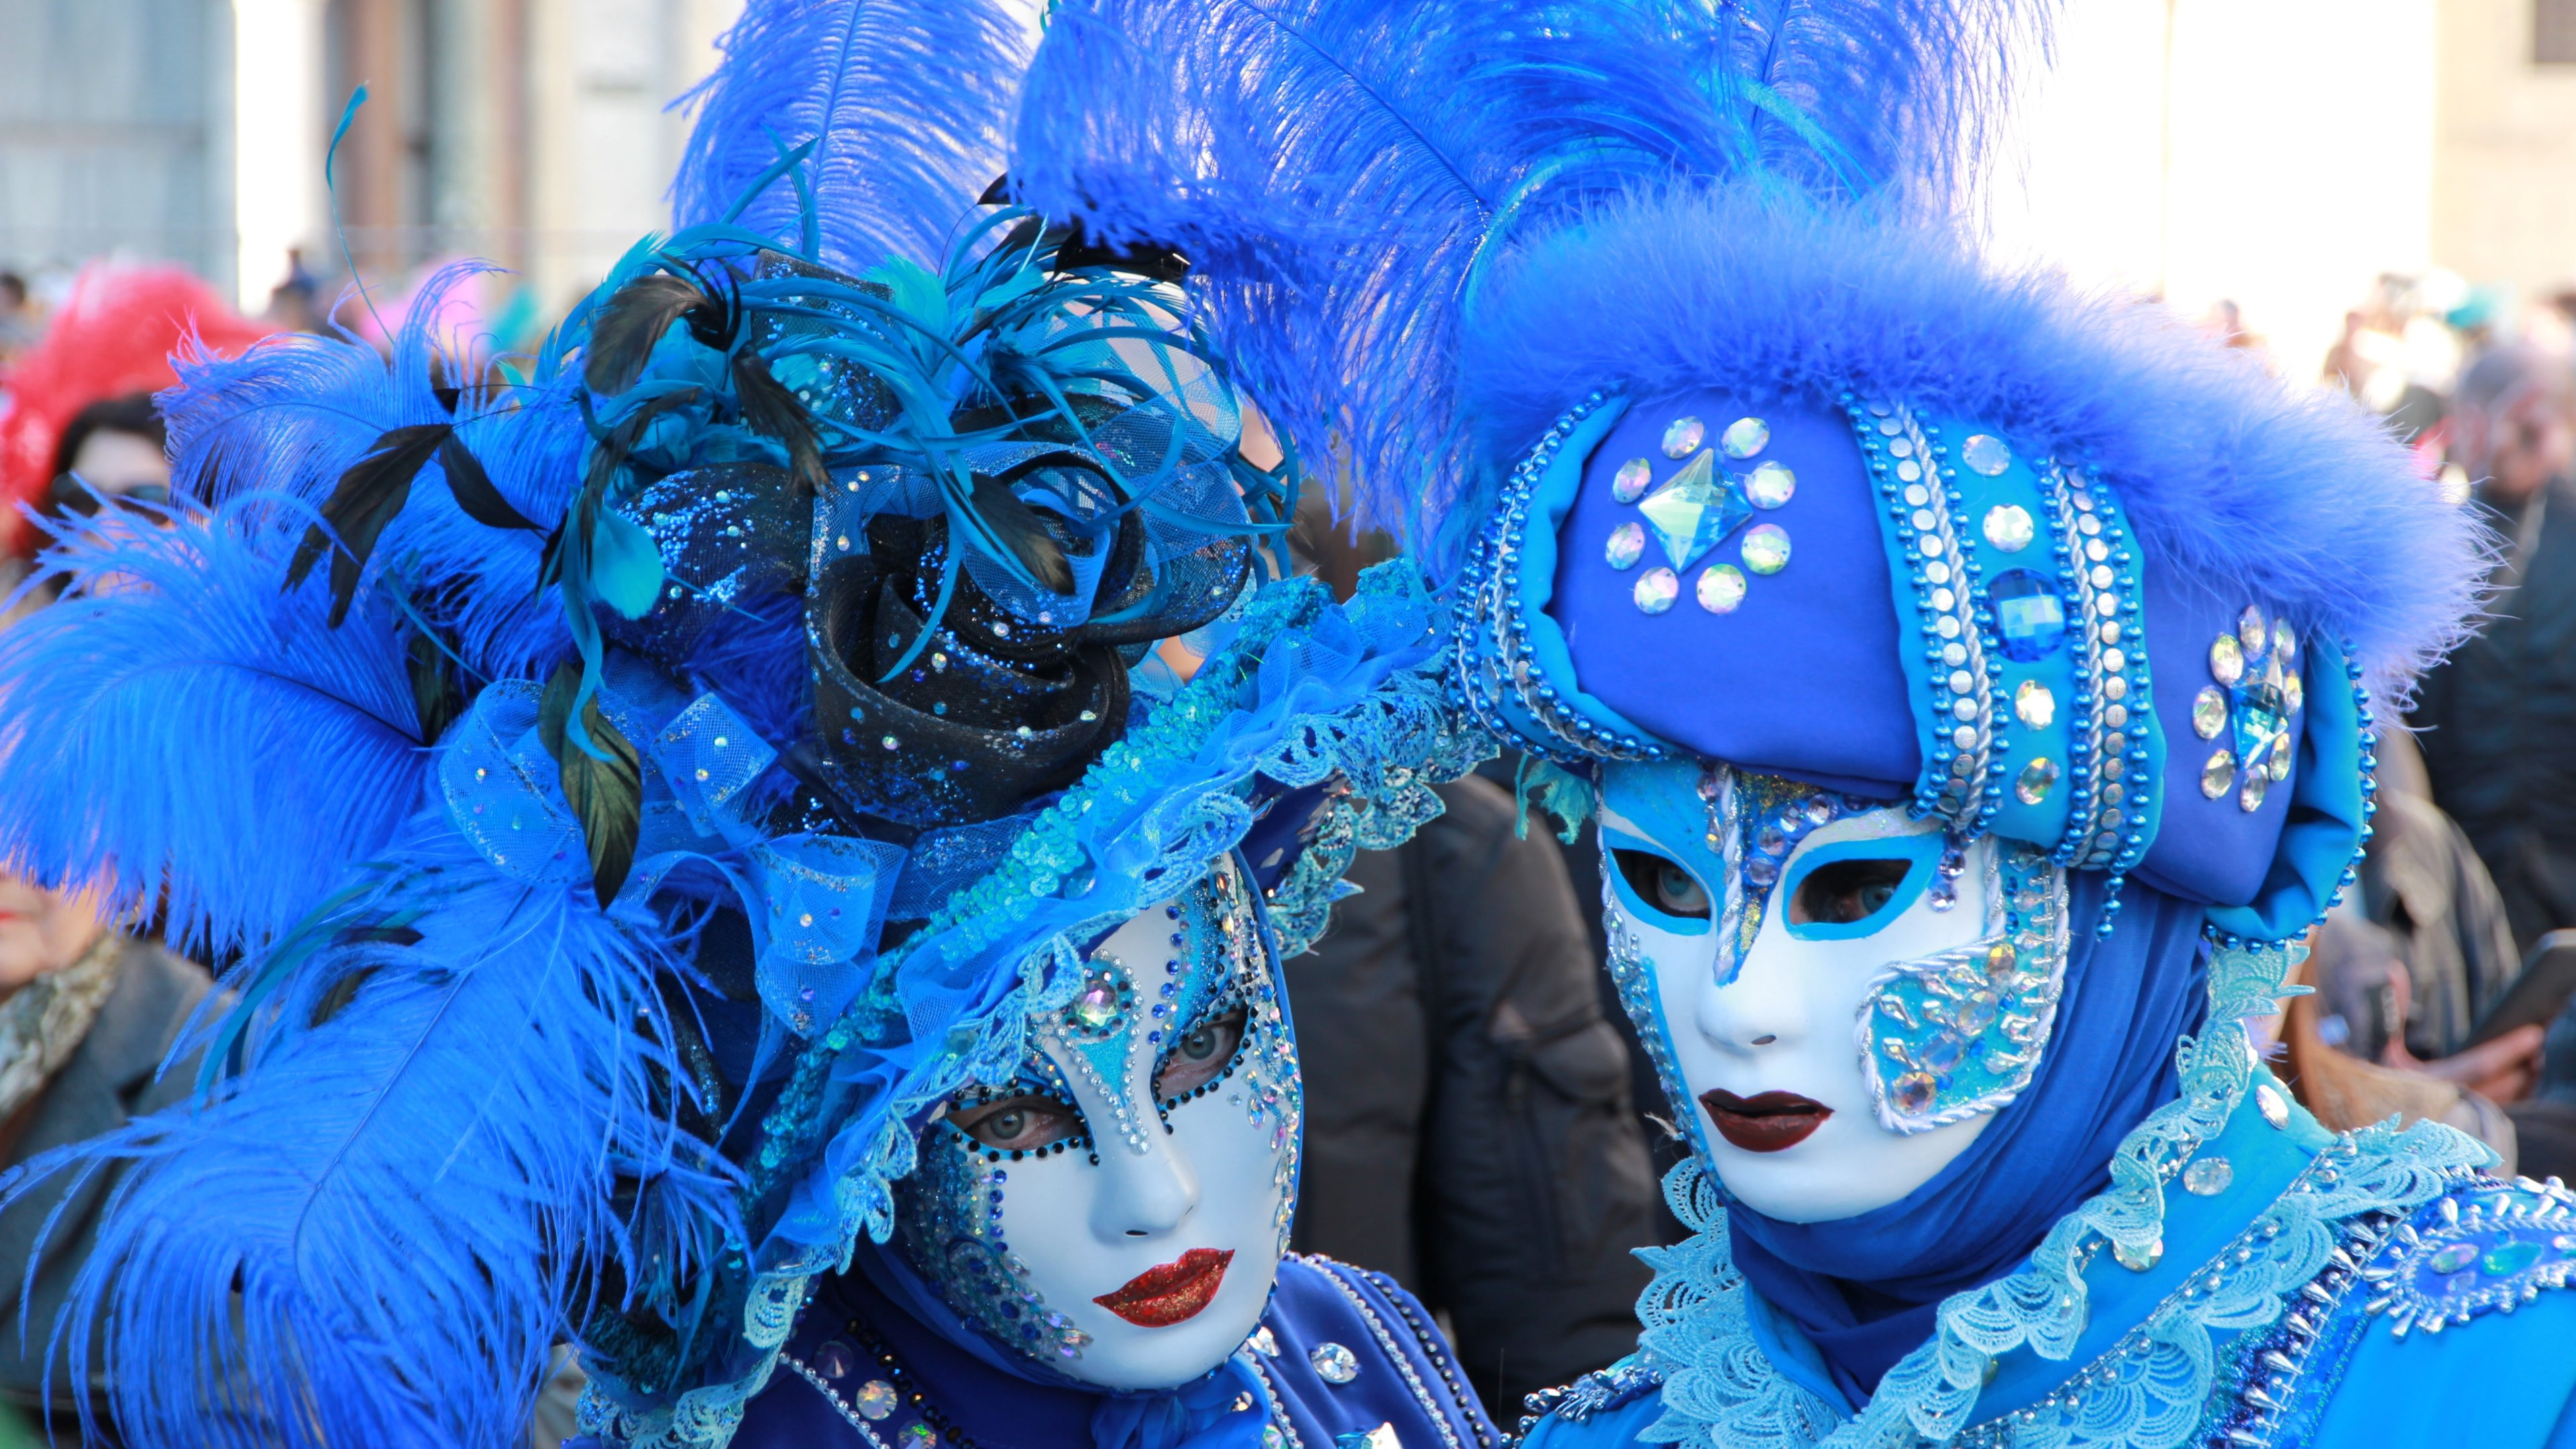 Mask at Venice Carnival 4k Ultra HD Wallpapers